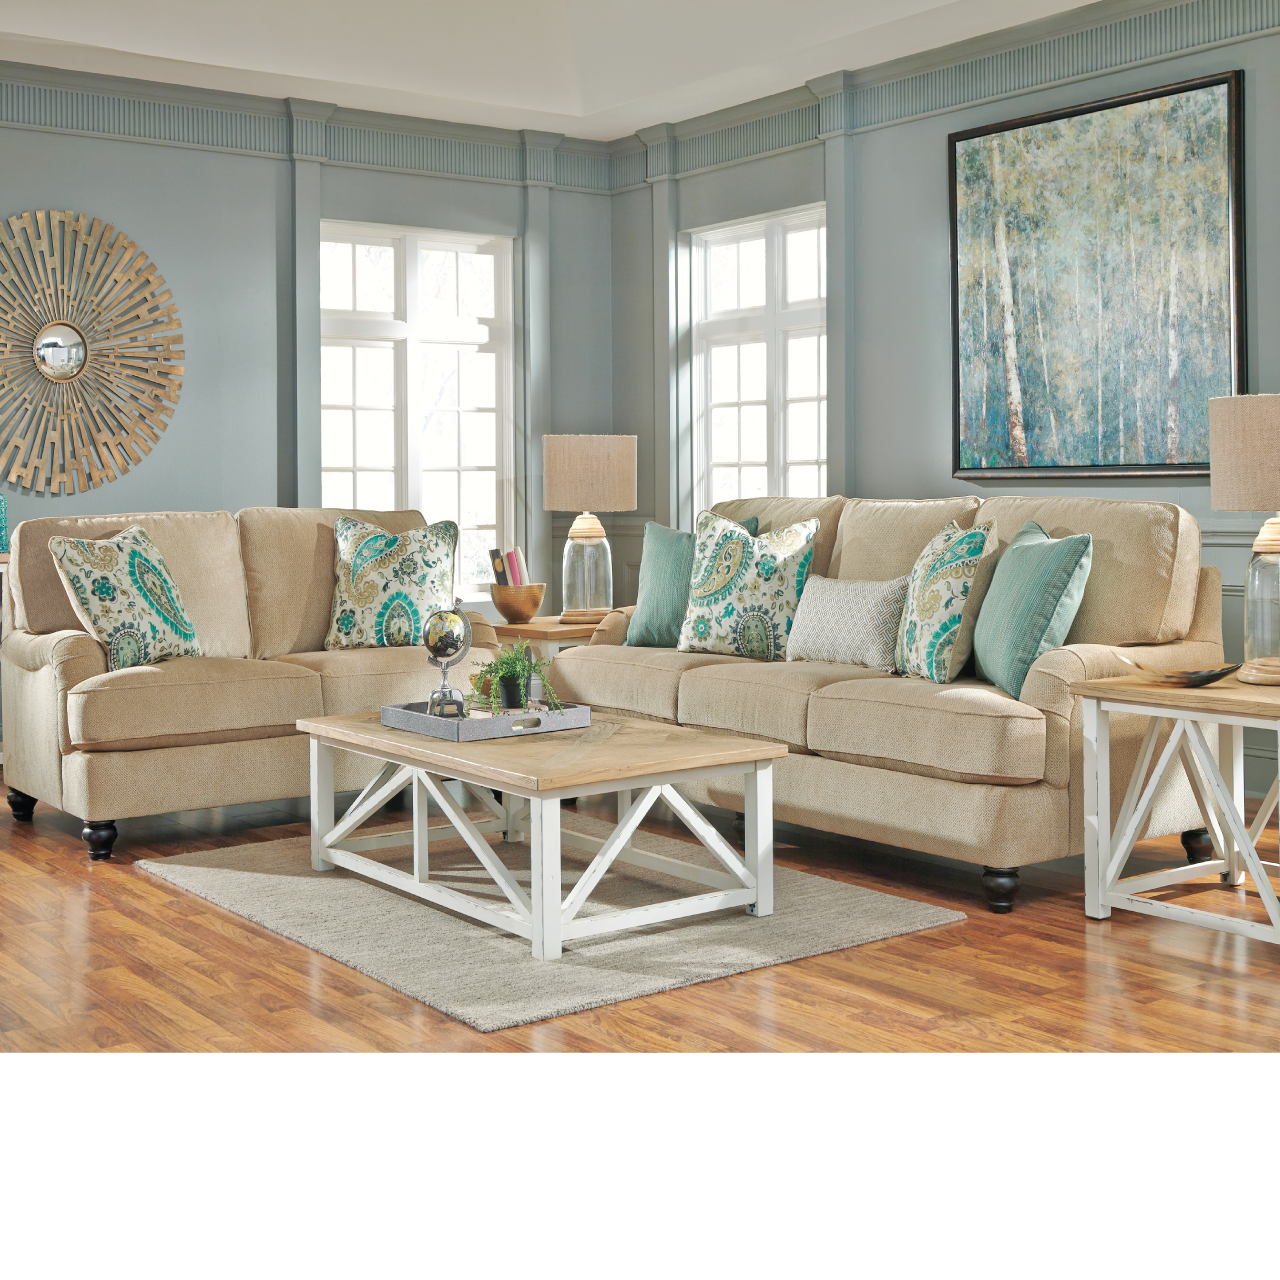 Coastal Living Room: Coastal Living Room Ideas: Lochian Sofa By Ashley